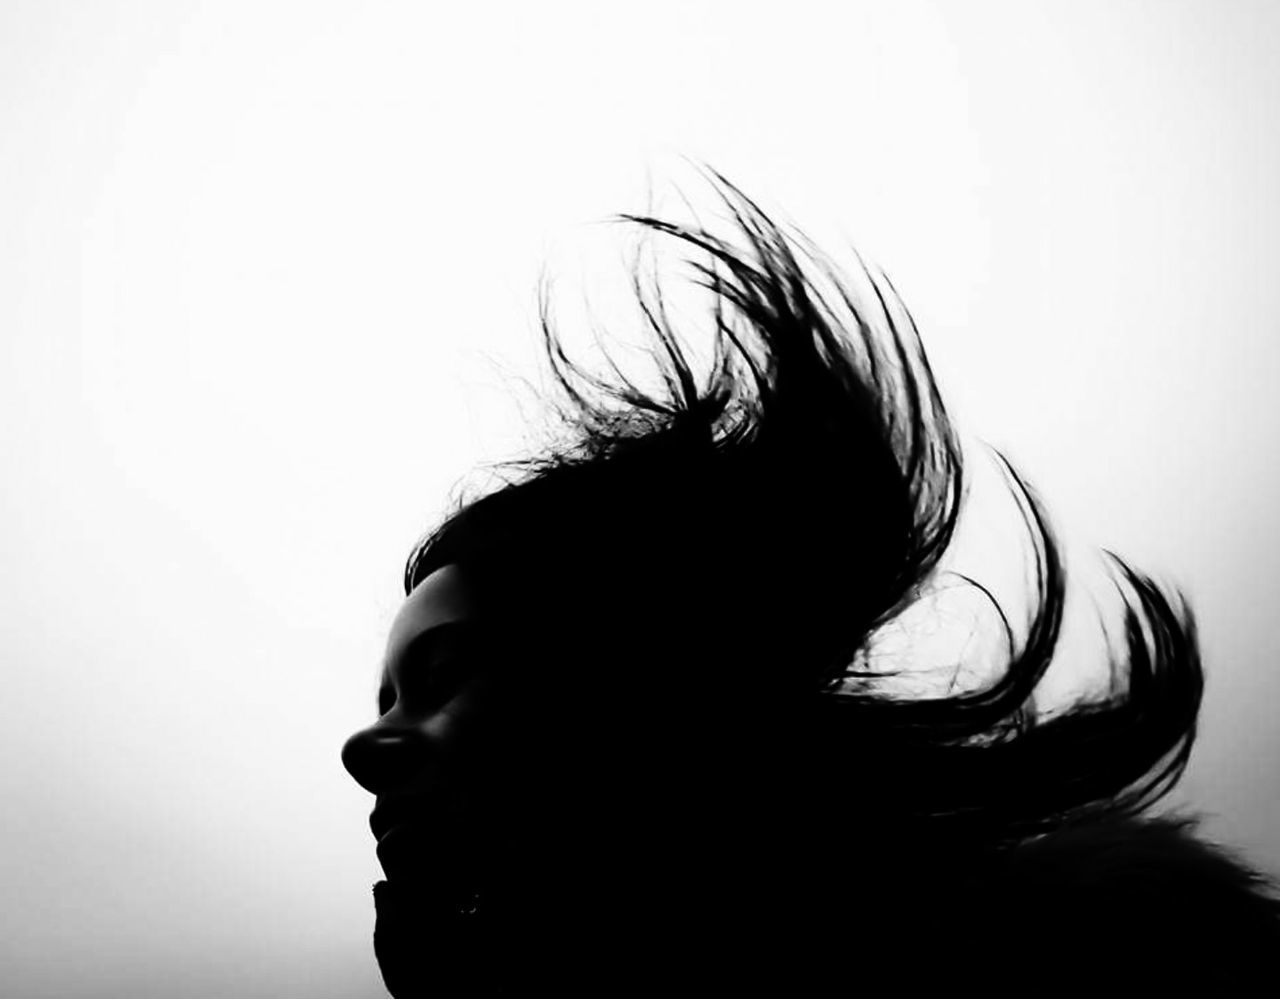 Hair Windy Day Windy Windyhair Human Hair One Person Headshot Adult One Woman Only Women Close-up Tangled Hair White Background Eyeem Market Eyeemphotography EyeEm Best Shots - Black + White EyeEm Bnw EyeEm Best Shots Shadows & Lights Shadow Play Profile Shadow-art Portrait Light And Shadow Silhouette Photography